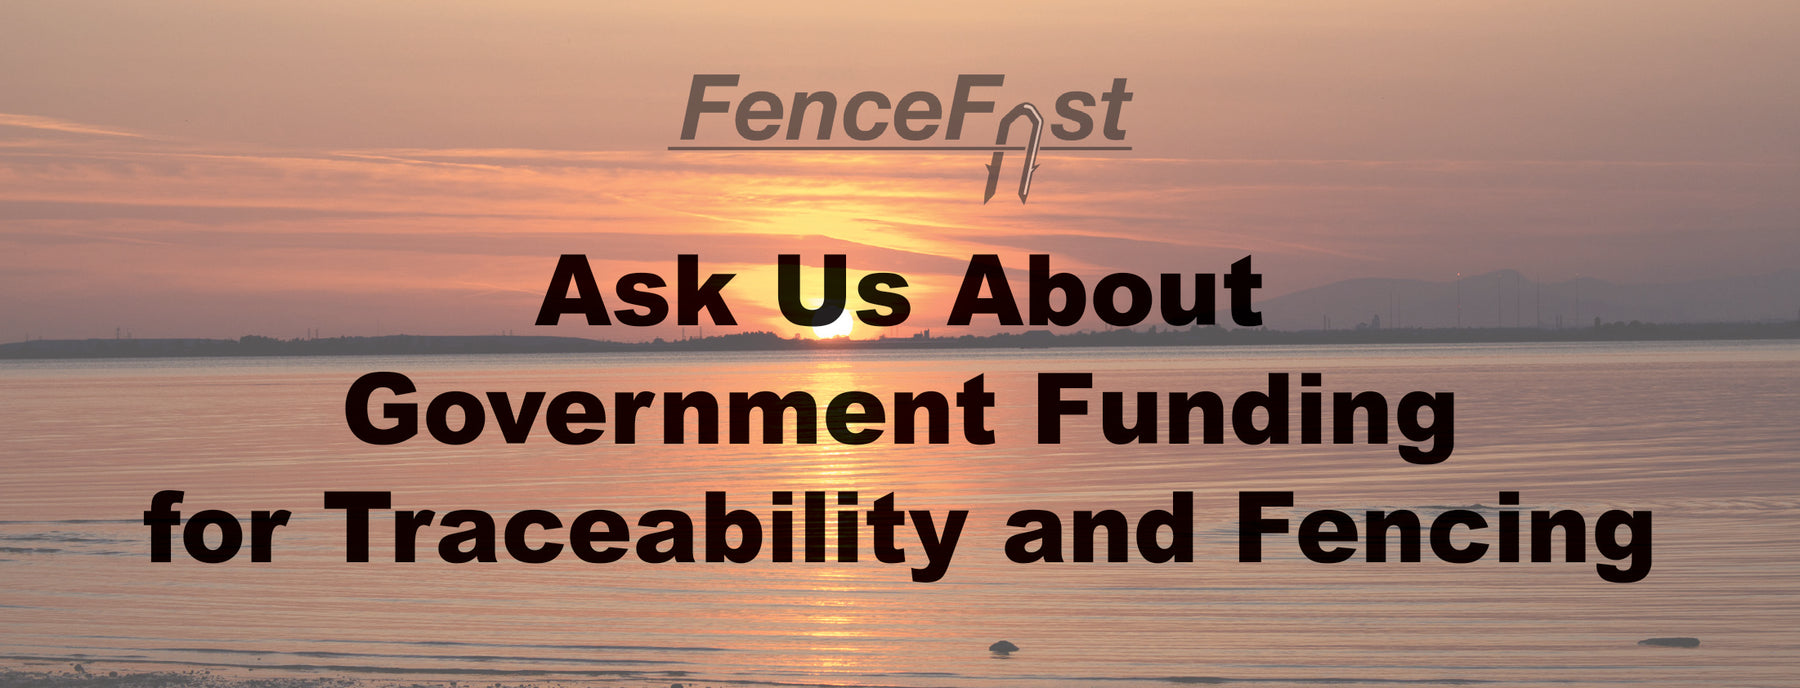 FenceFast Ltd.